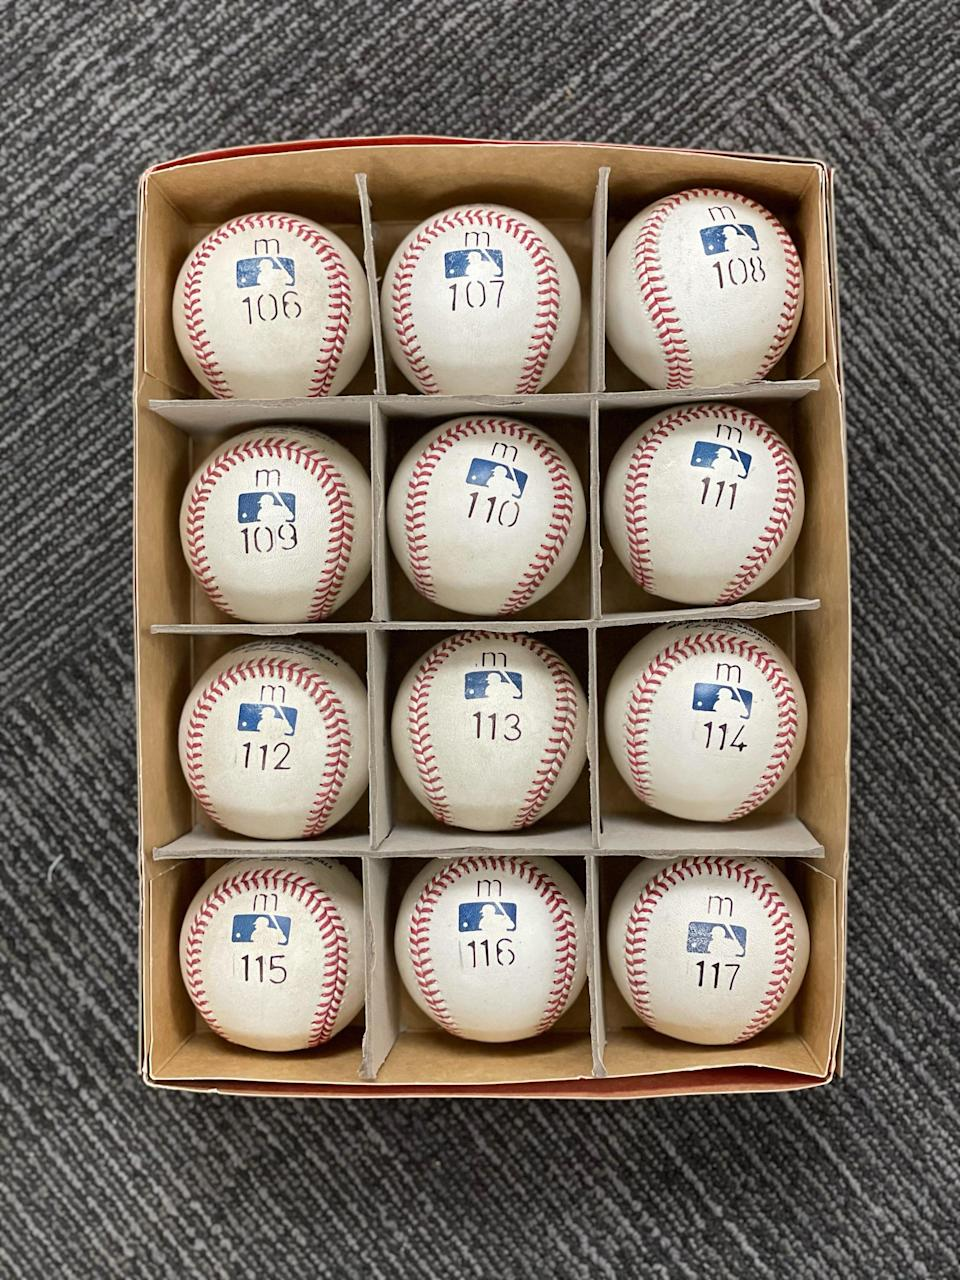 MLB used special baseballs for Miguel Cabrera's plate appearances after he reached 499 home runs. Cabrera crushed his 500th home run —the m-113 ball —on Sunday, Aug. 22, 2021 in Toronto.